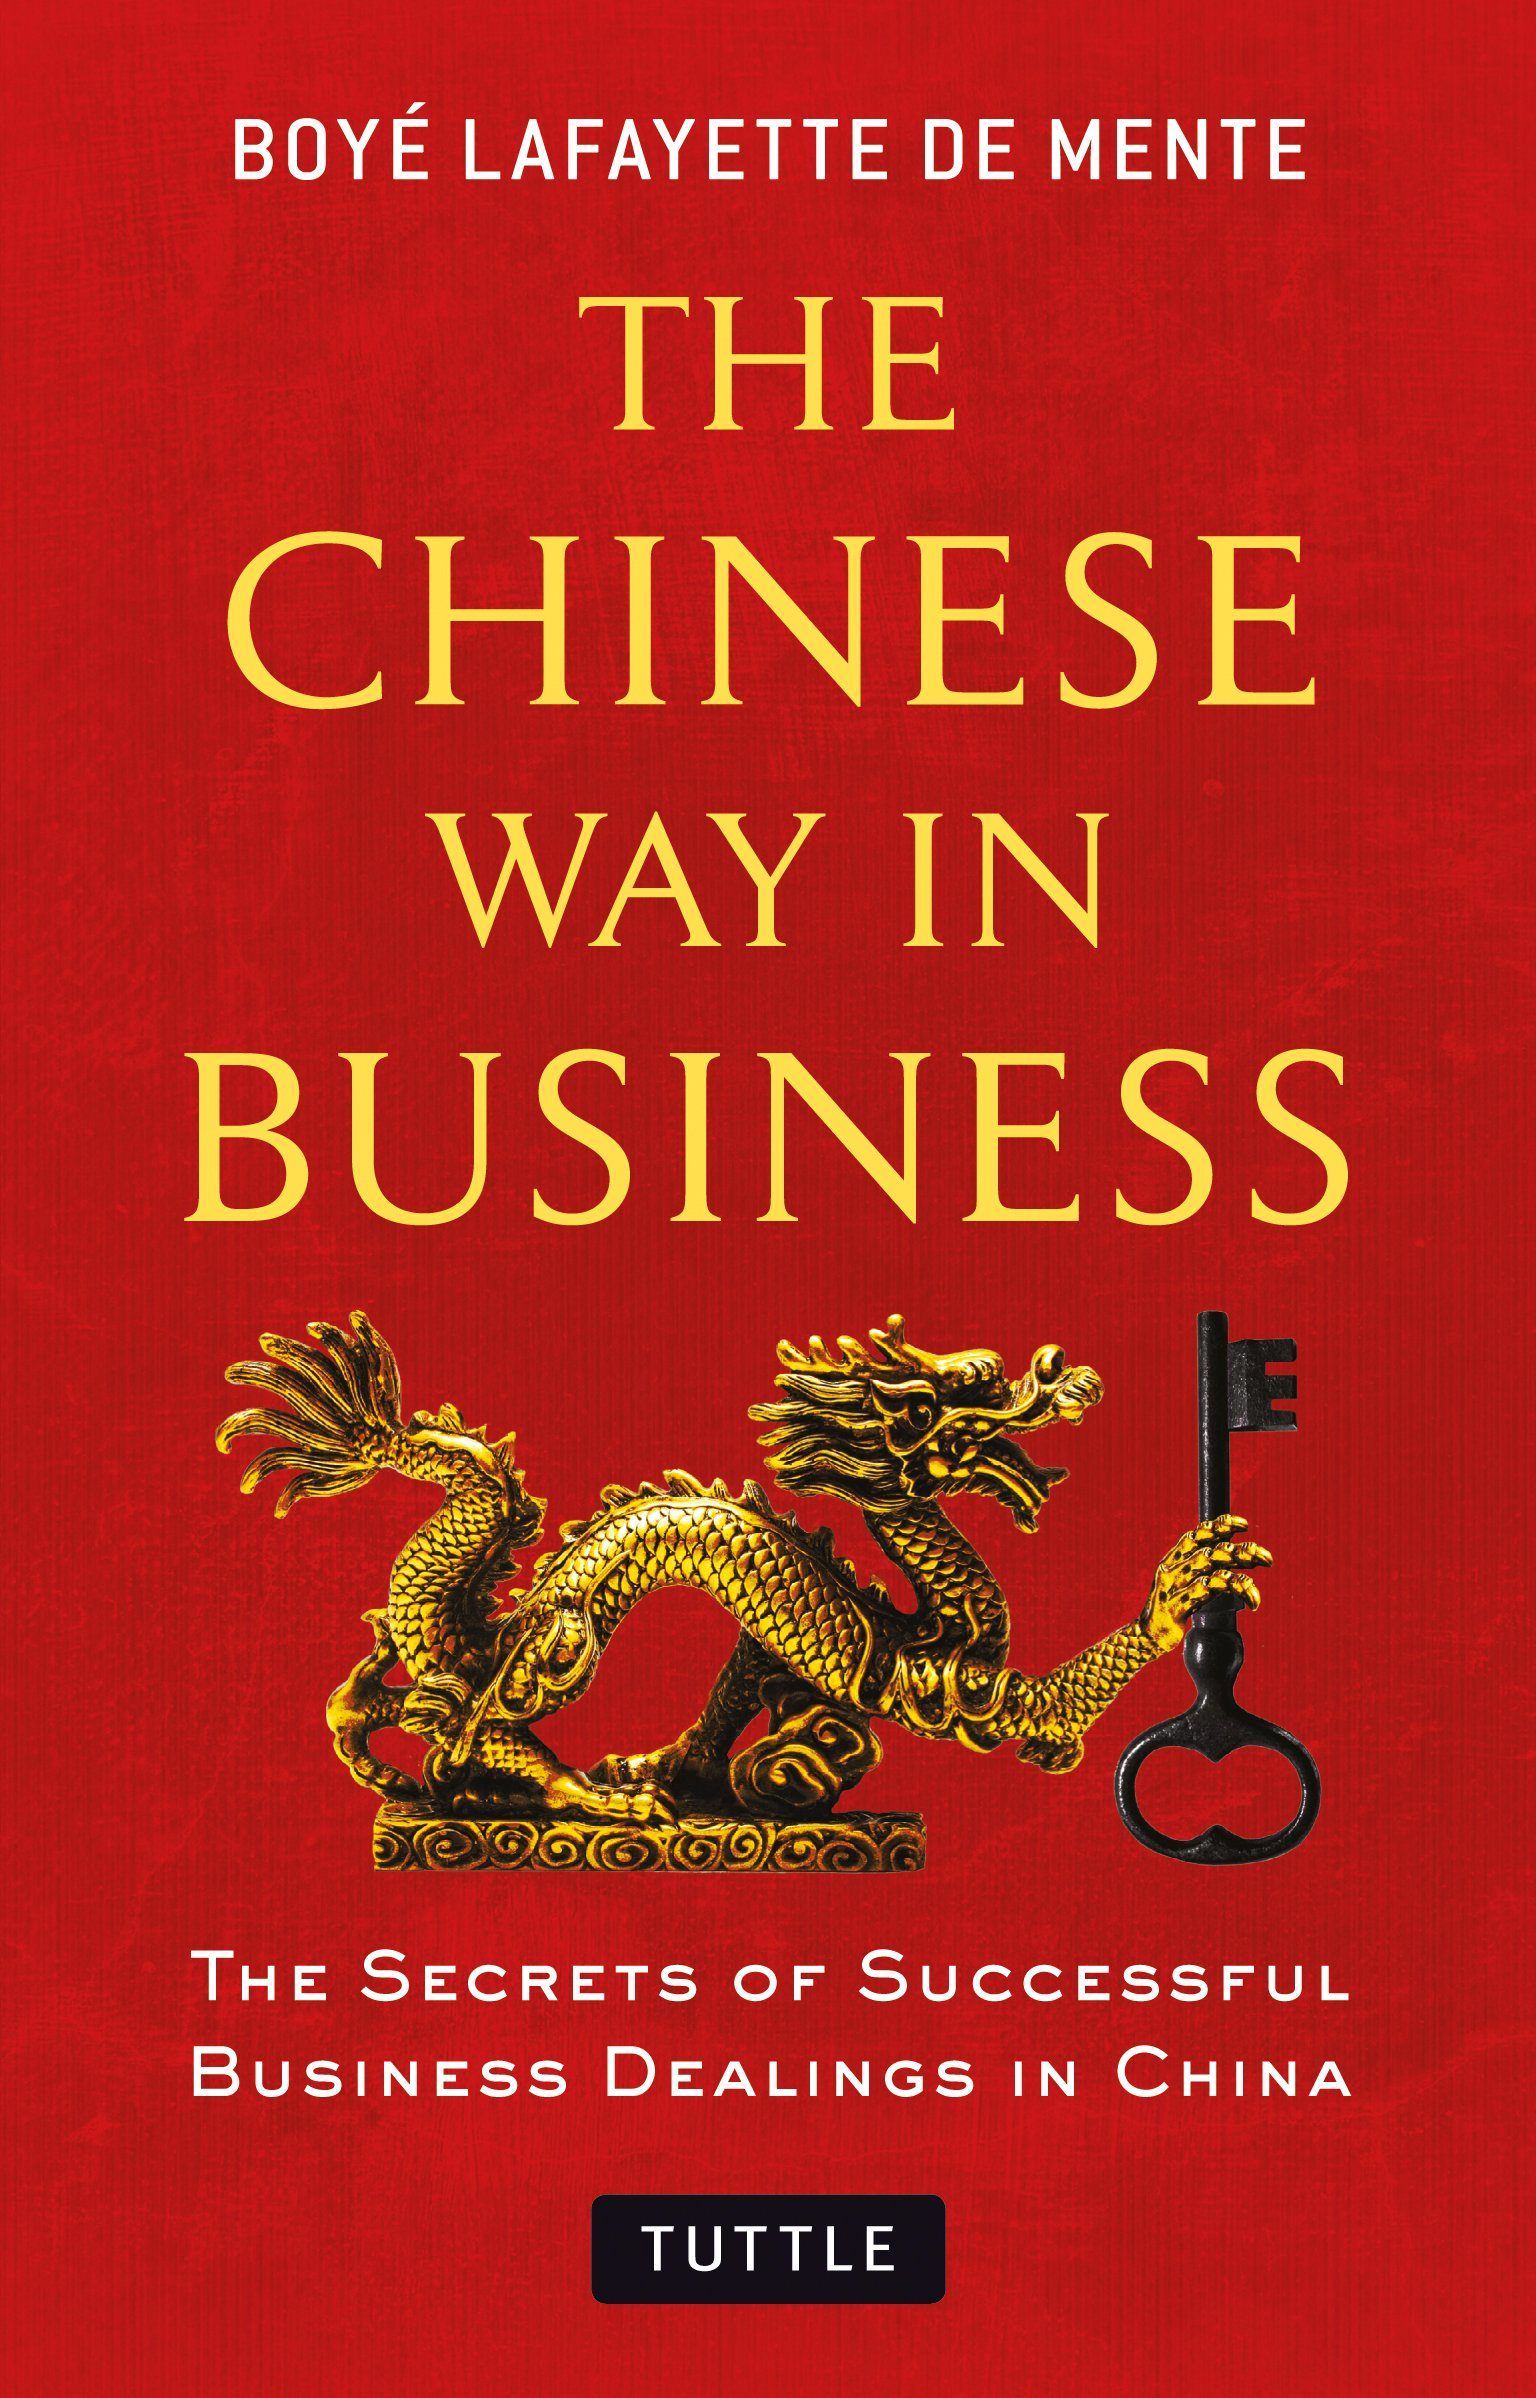 Secrets of a successful business with China